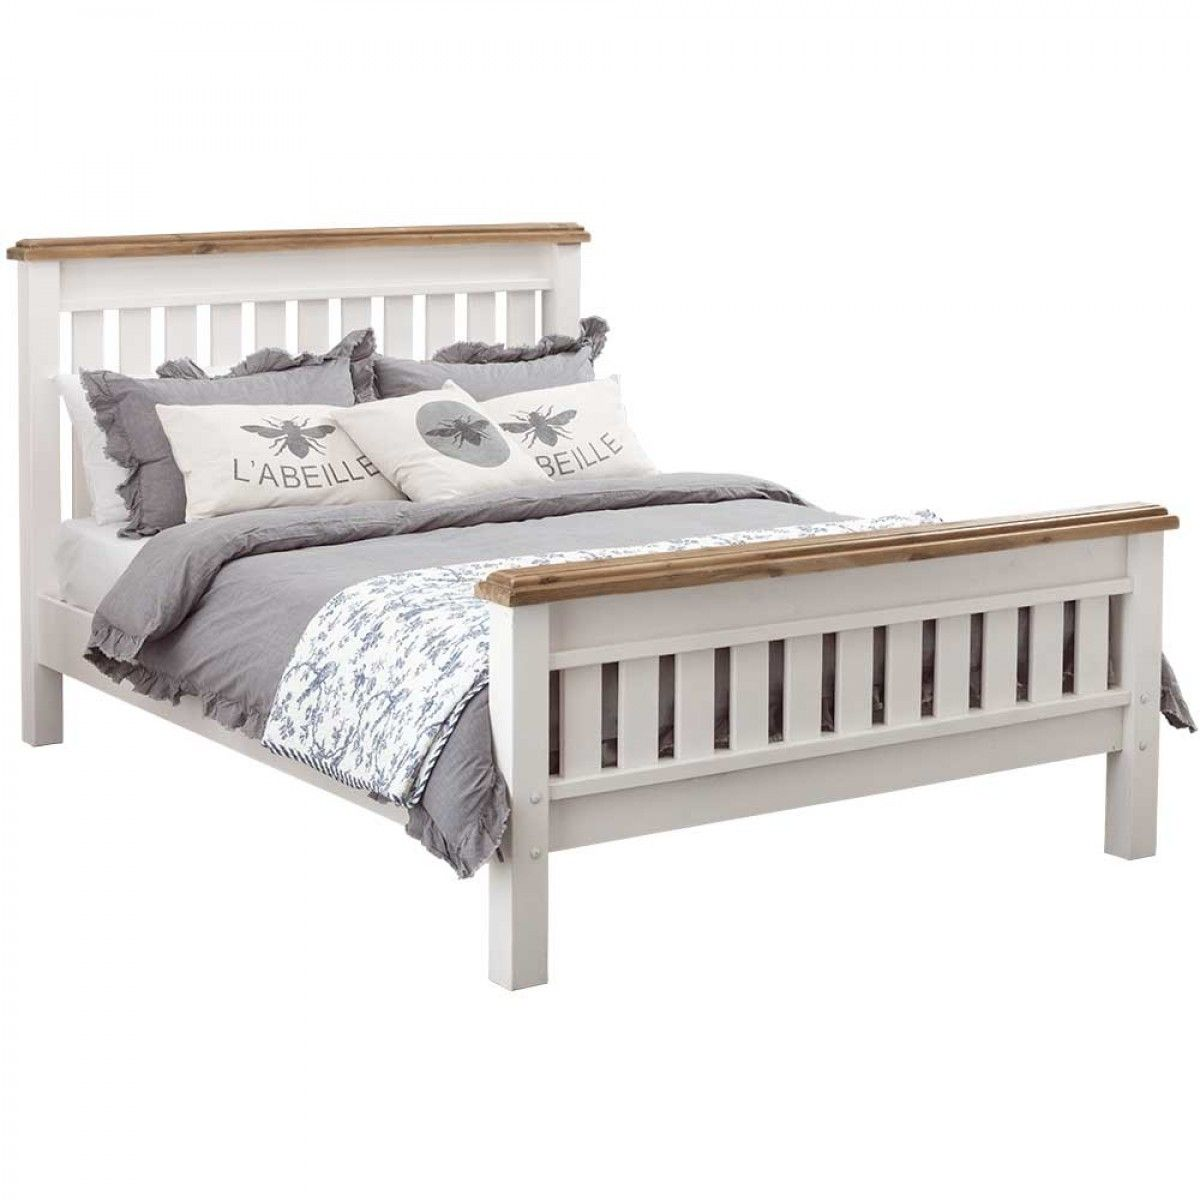 Buy Online Early Settler White Painted Furniture Furnishings - Settler bedroom furniture